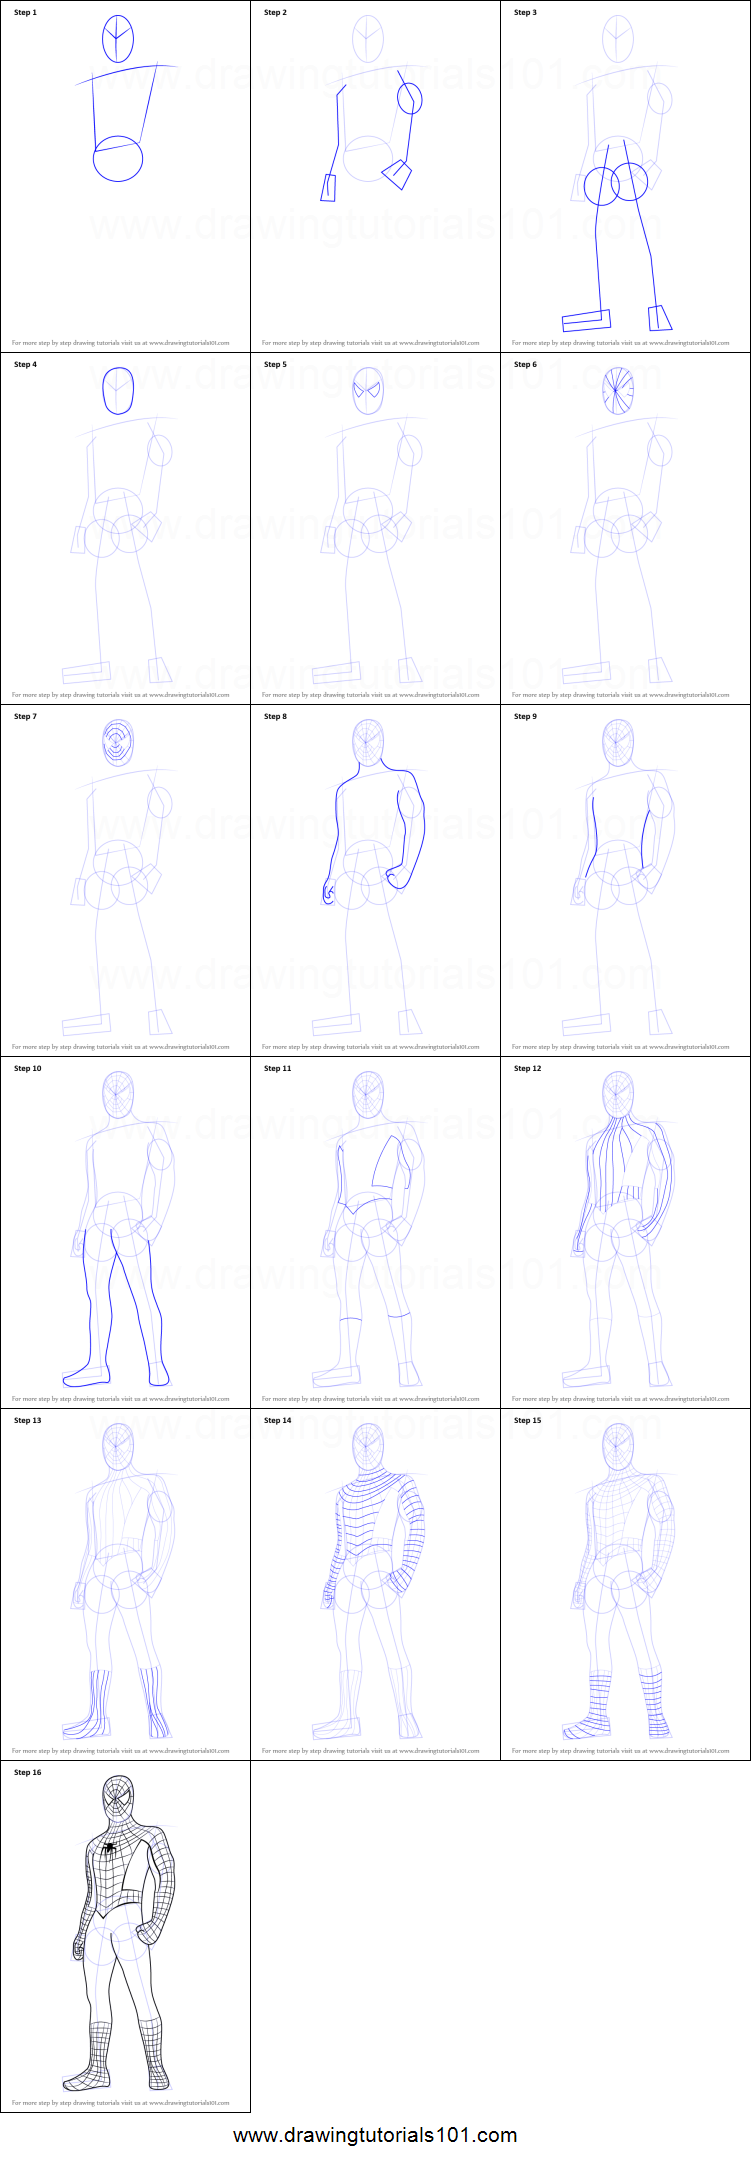 How To Draw Spiderman Standing